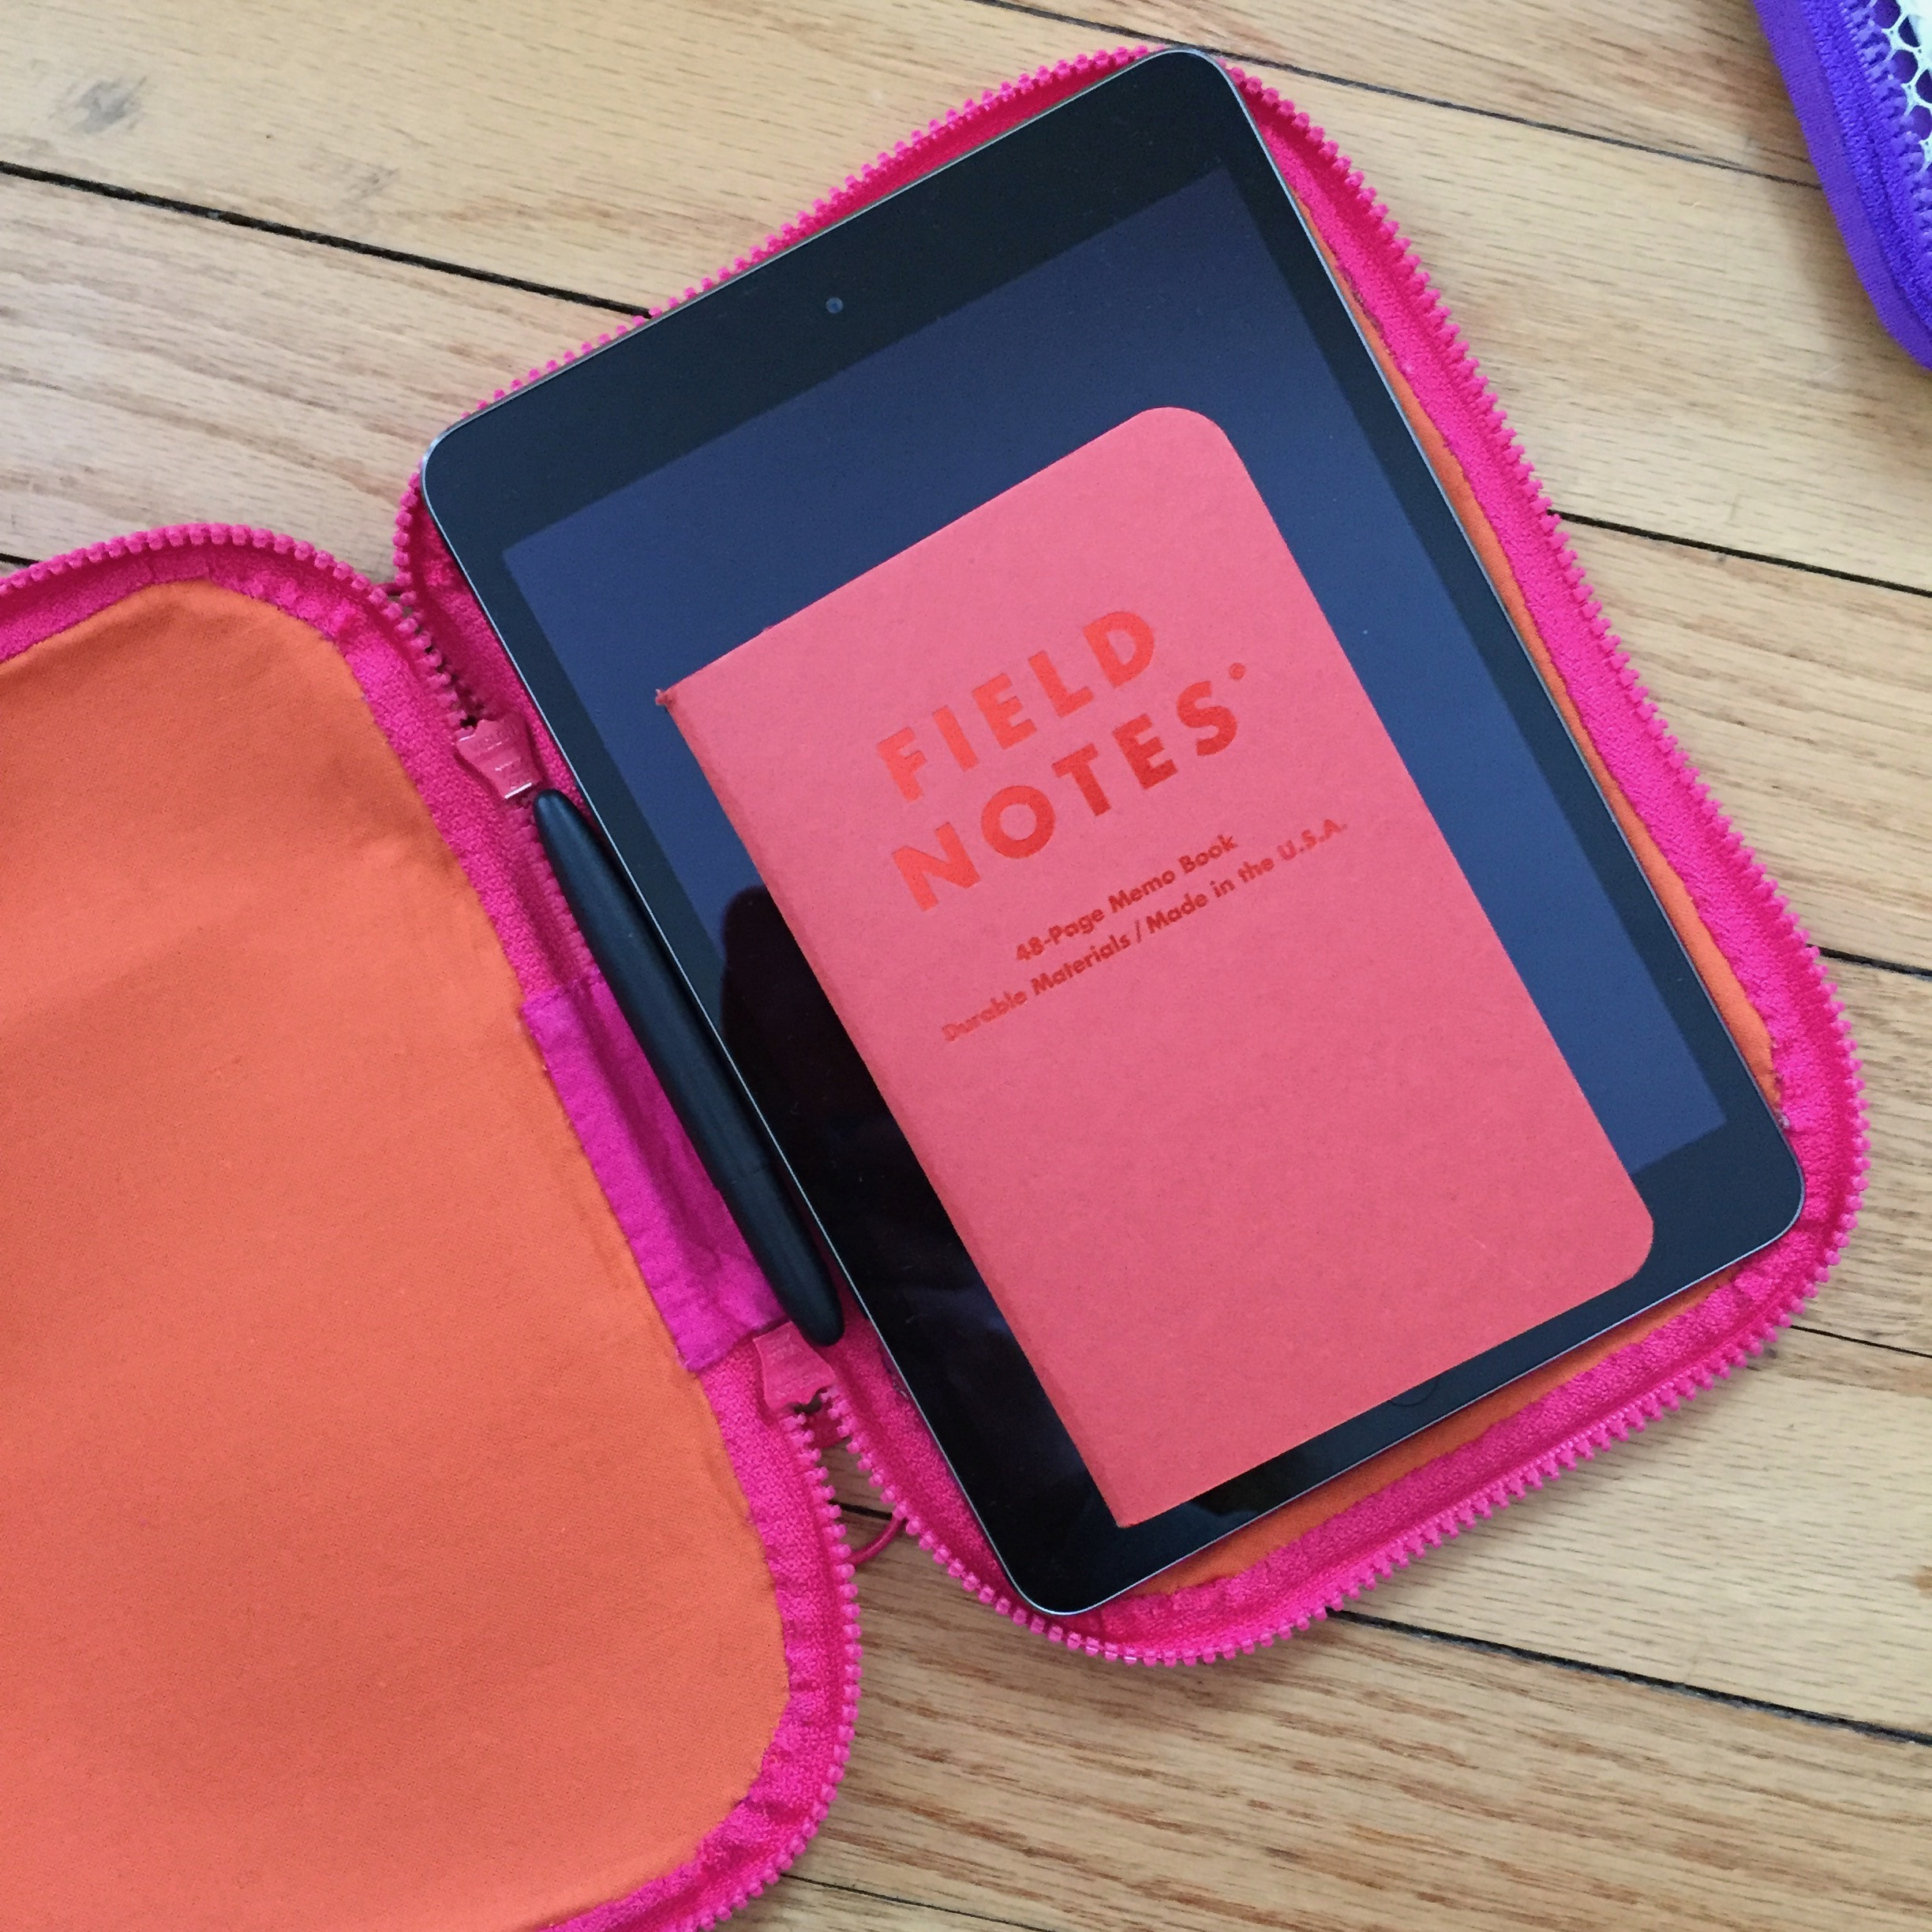 Perfectly fits an iPad mini, Field Notes, and a Space Pen